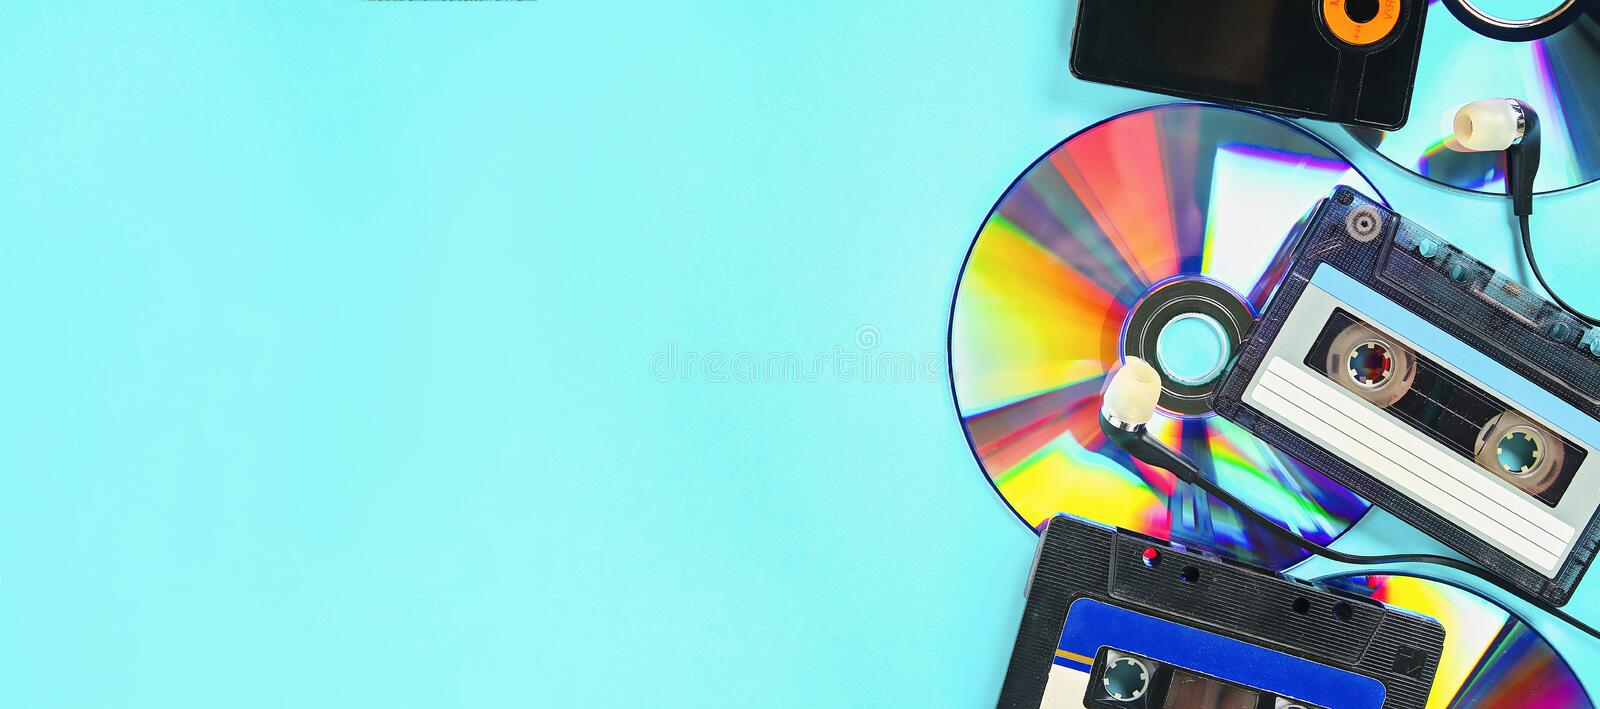 The Concept Of Evolution Music Cassette Cd Disk Mp3 Player Vintage And Modernity Music Support Stock Image Image Of Banner Listening 155290035